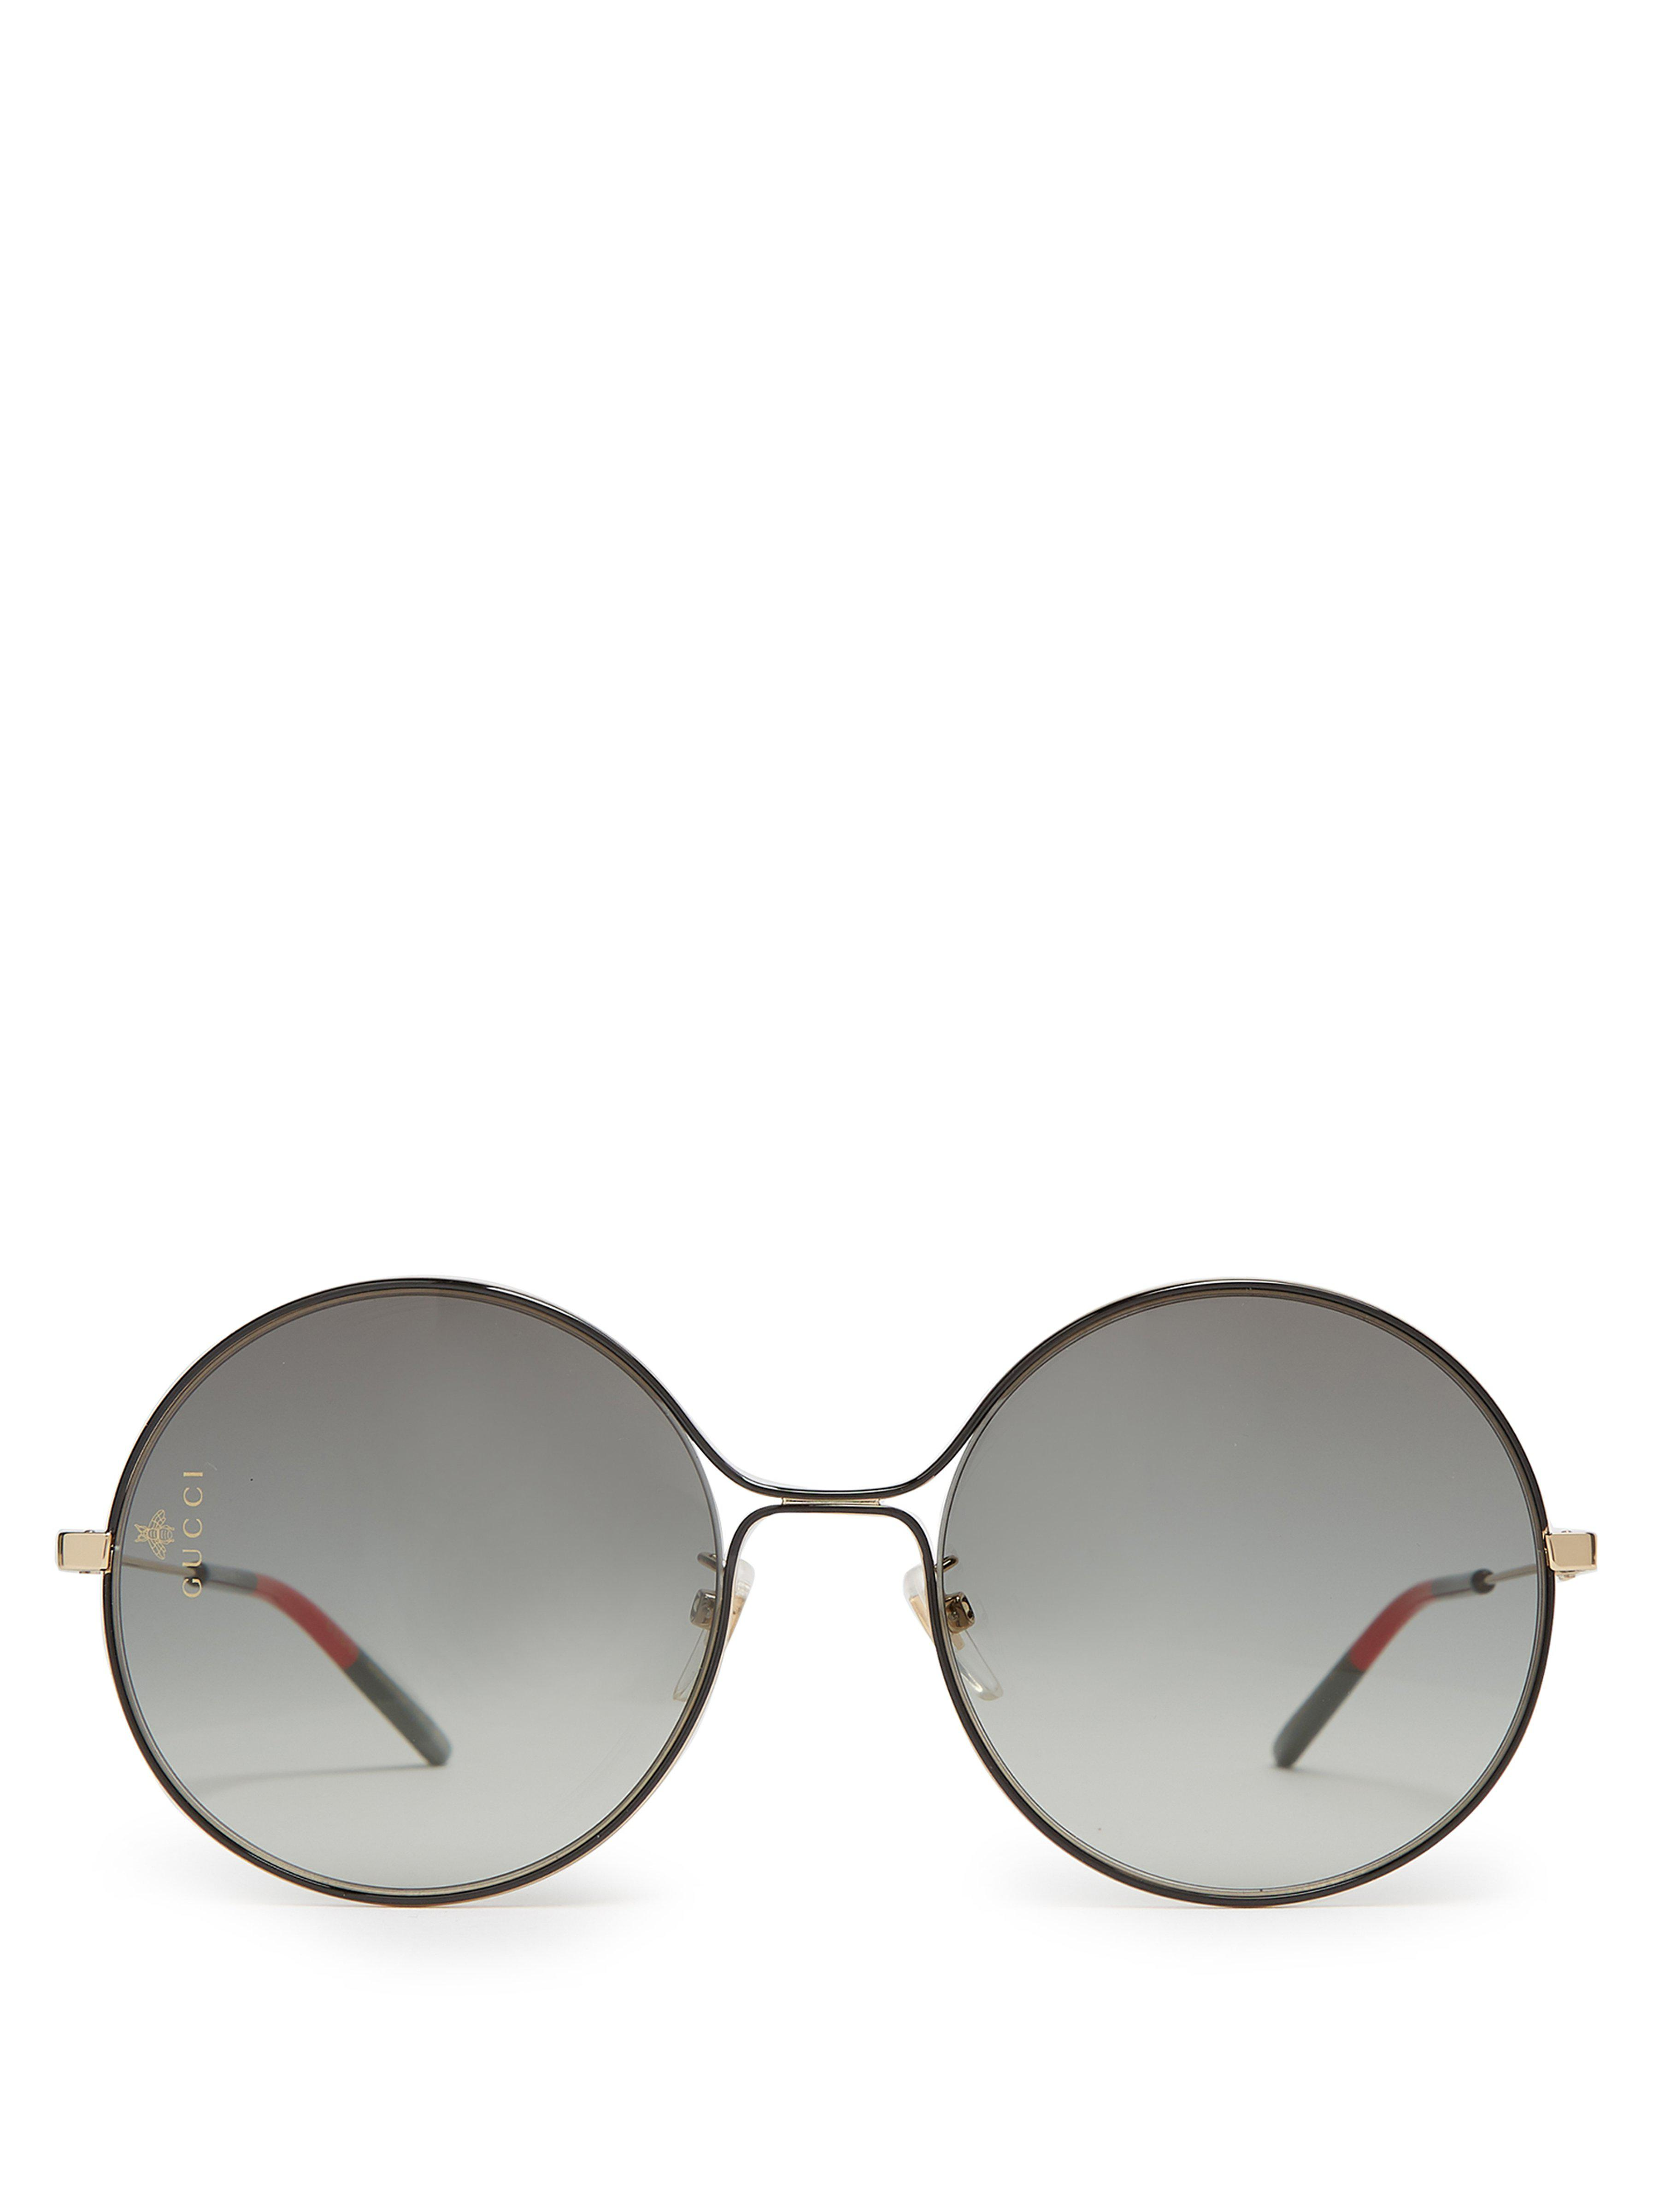 1da50e44c9a Gucci - Multicolor Gg Rounded Frame Metal Sunglasses - Lyst. View fullscreen